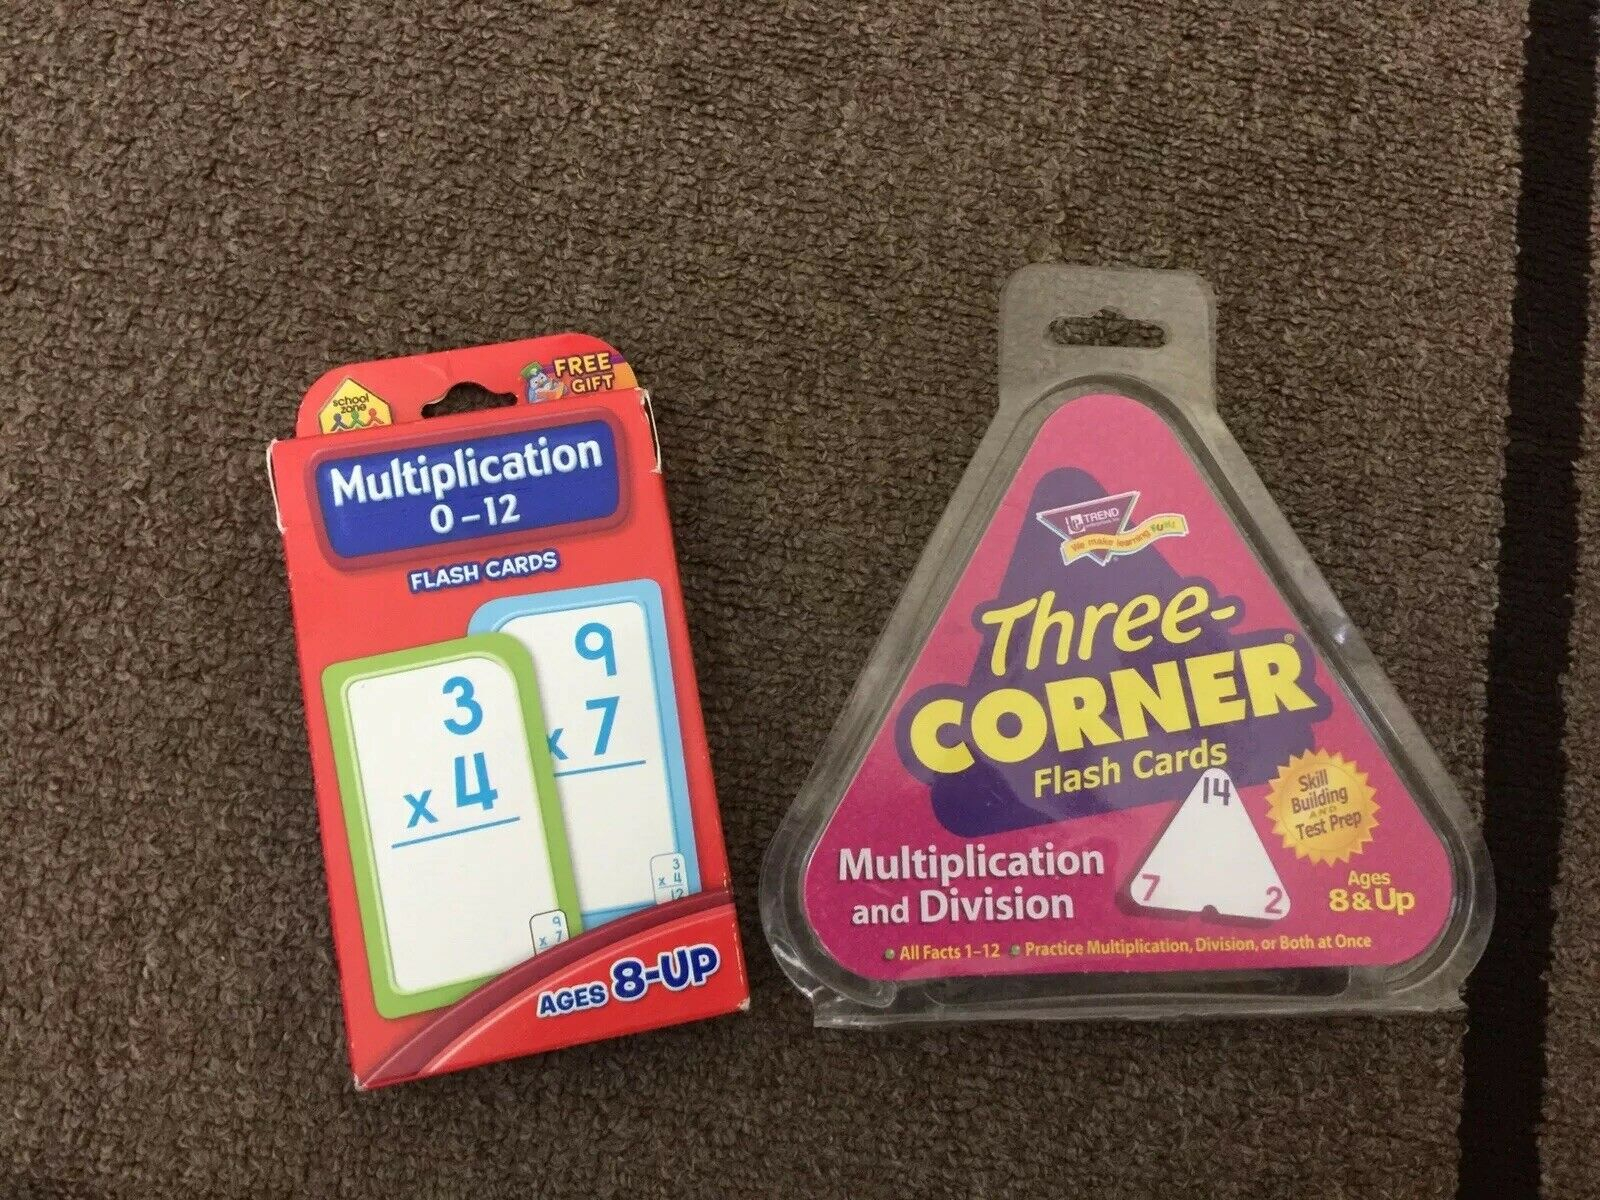 Trend Multiplication Division 3 Corner Flash Cards And Multiplication Card  Lot